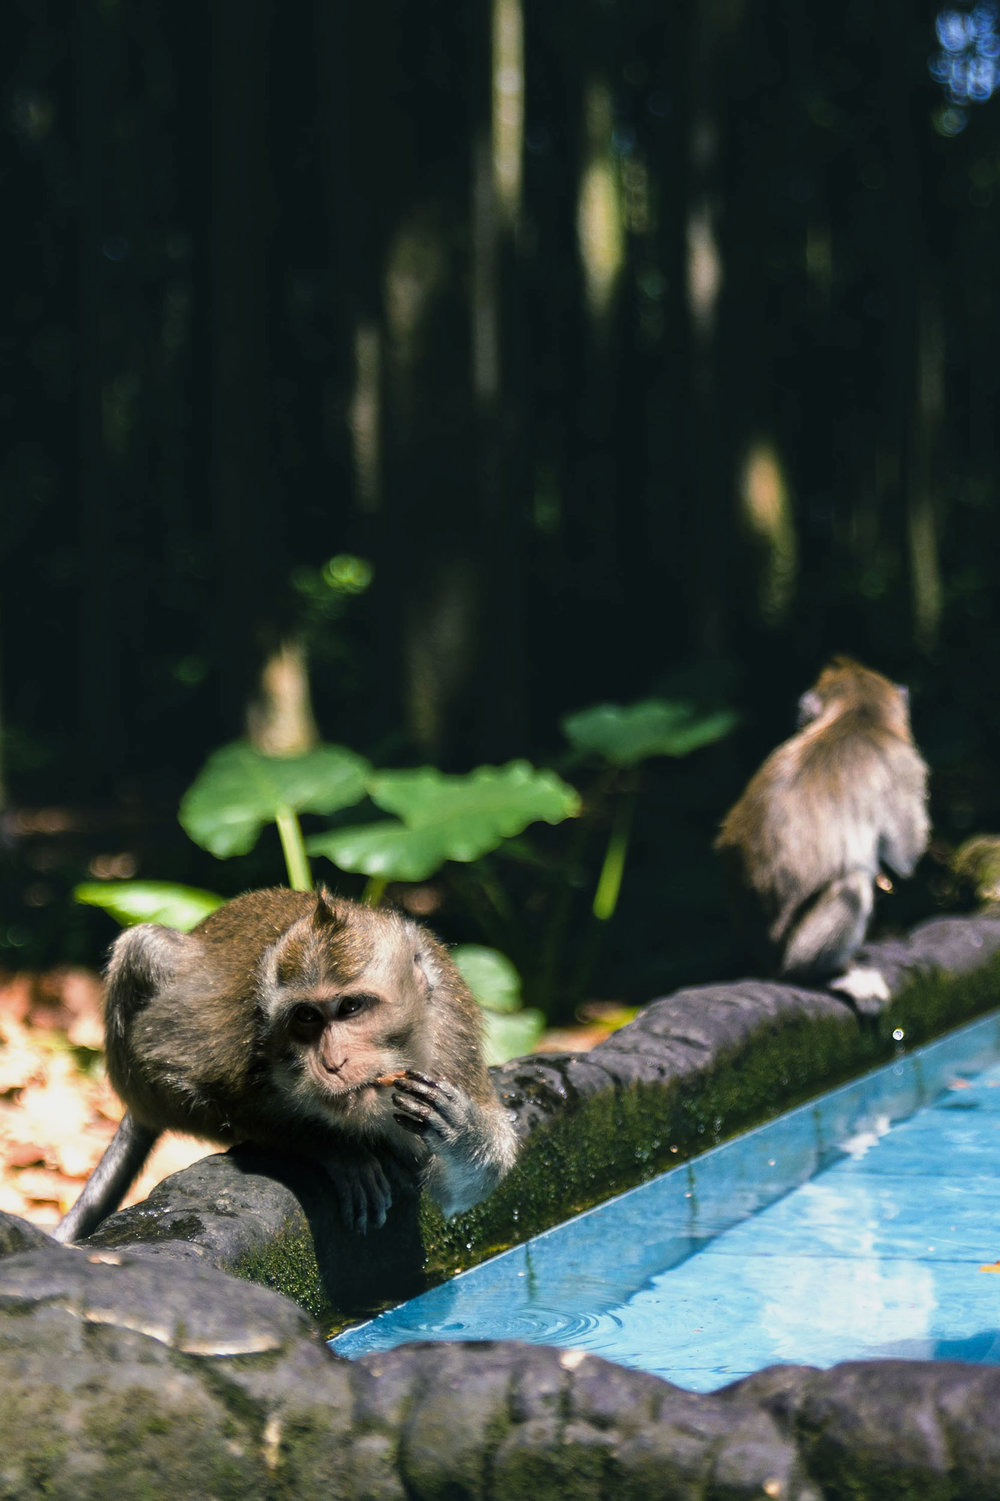 A monkey sits by a pool of water at Sangeh Monkey Forest in Bali.